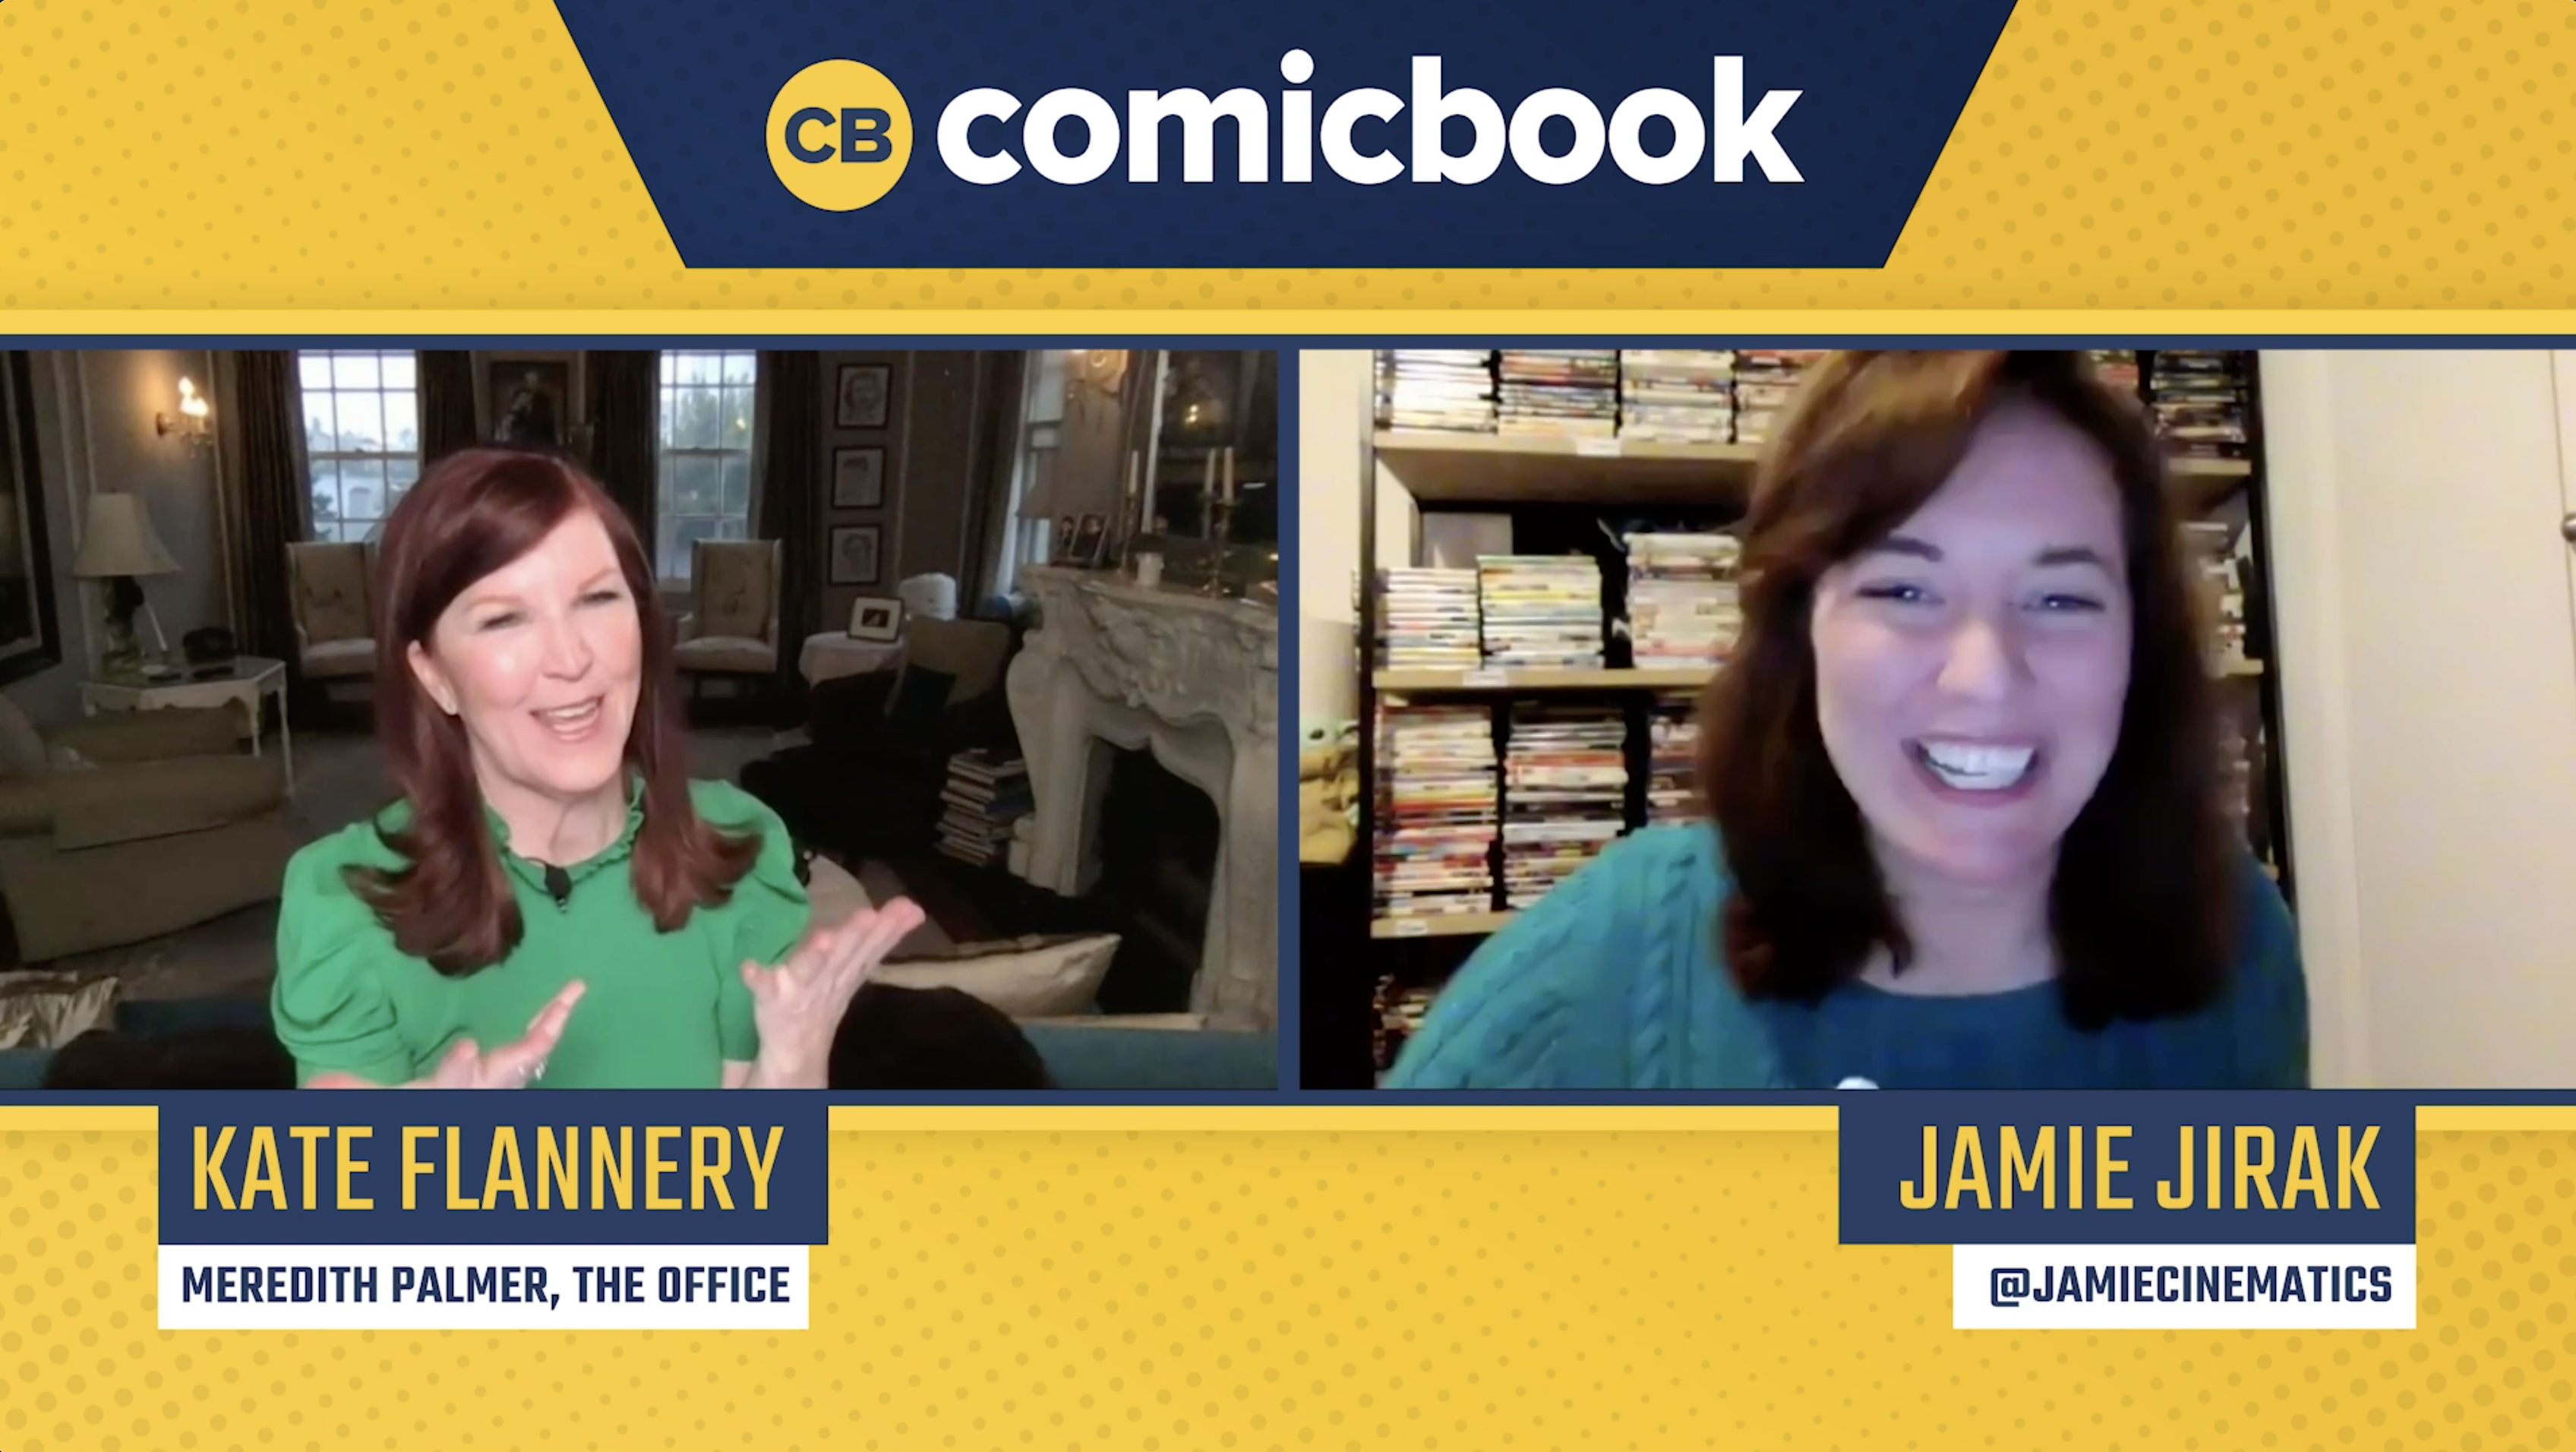 Kate Flannery Talks the Office - Exclusive ComicBook.com Interview